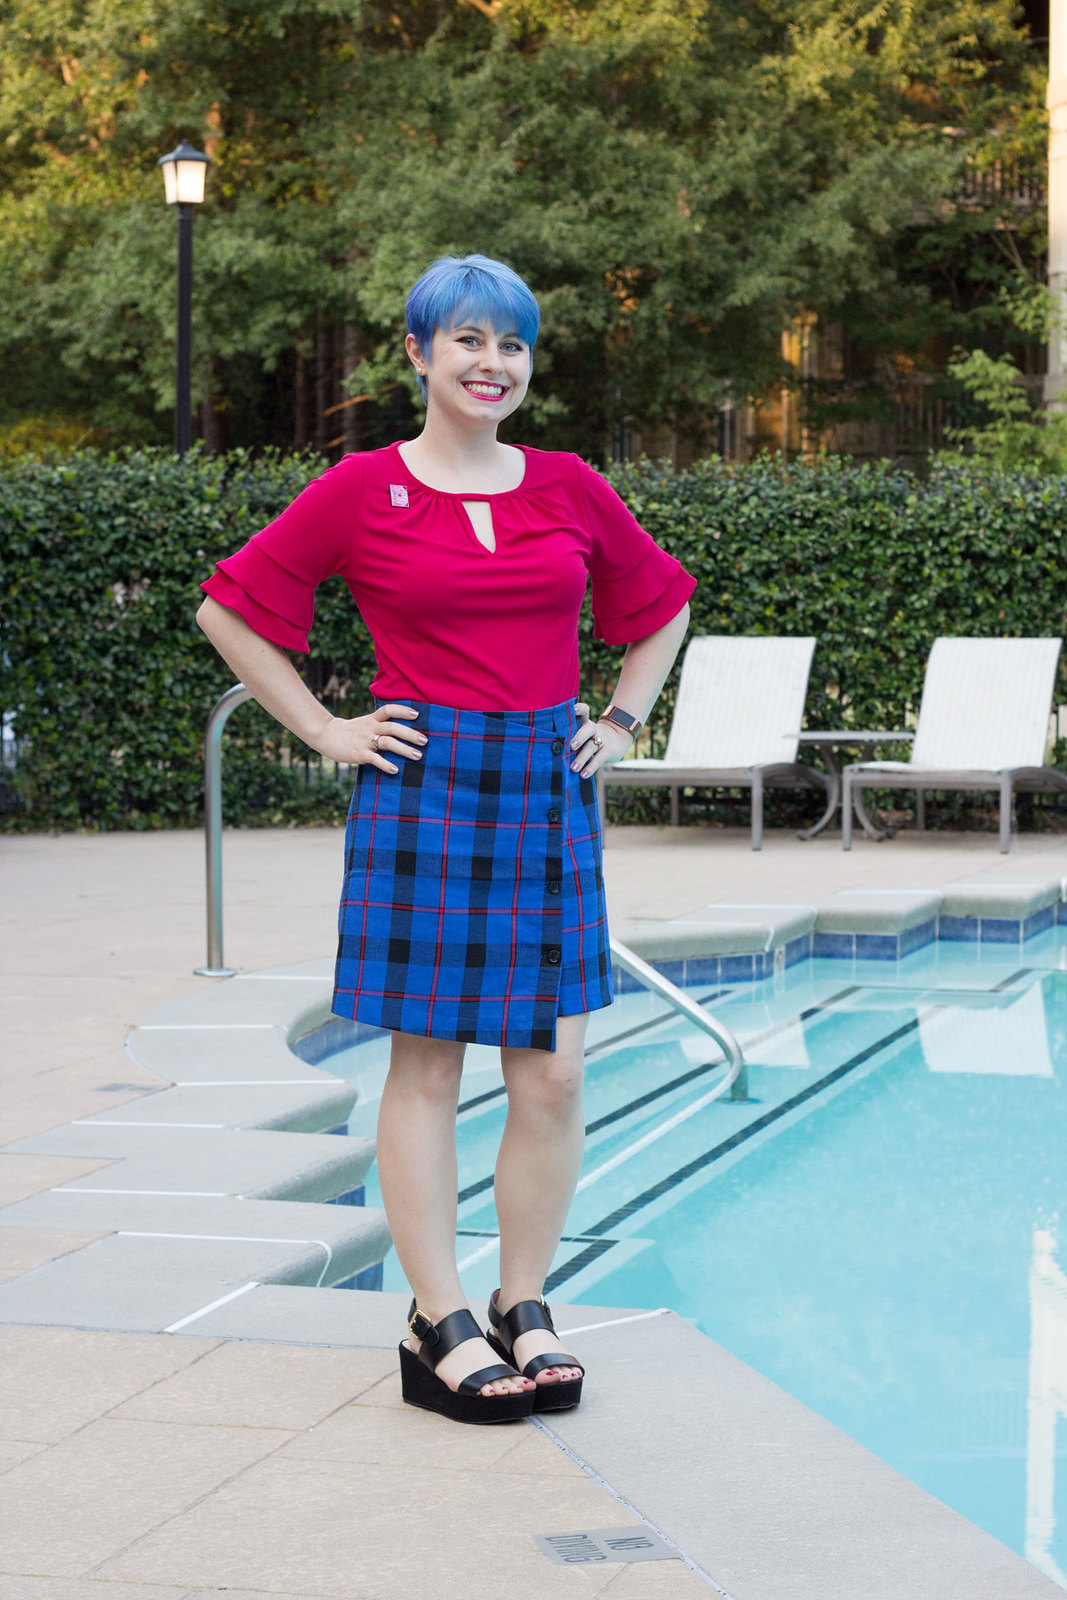 Blue Tartan Skirt with Hot Pink Top and Platform Sandals